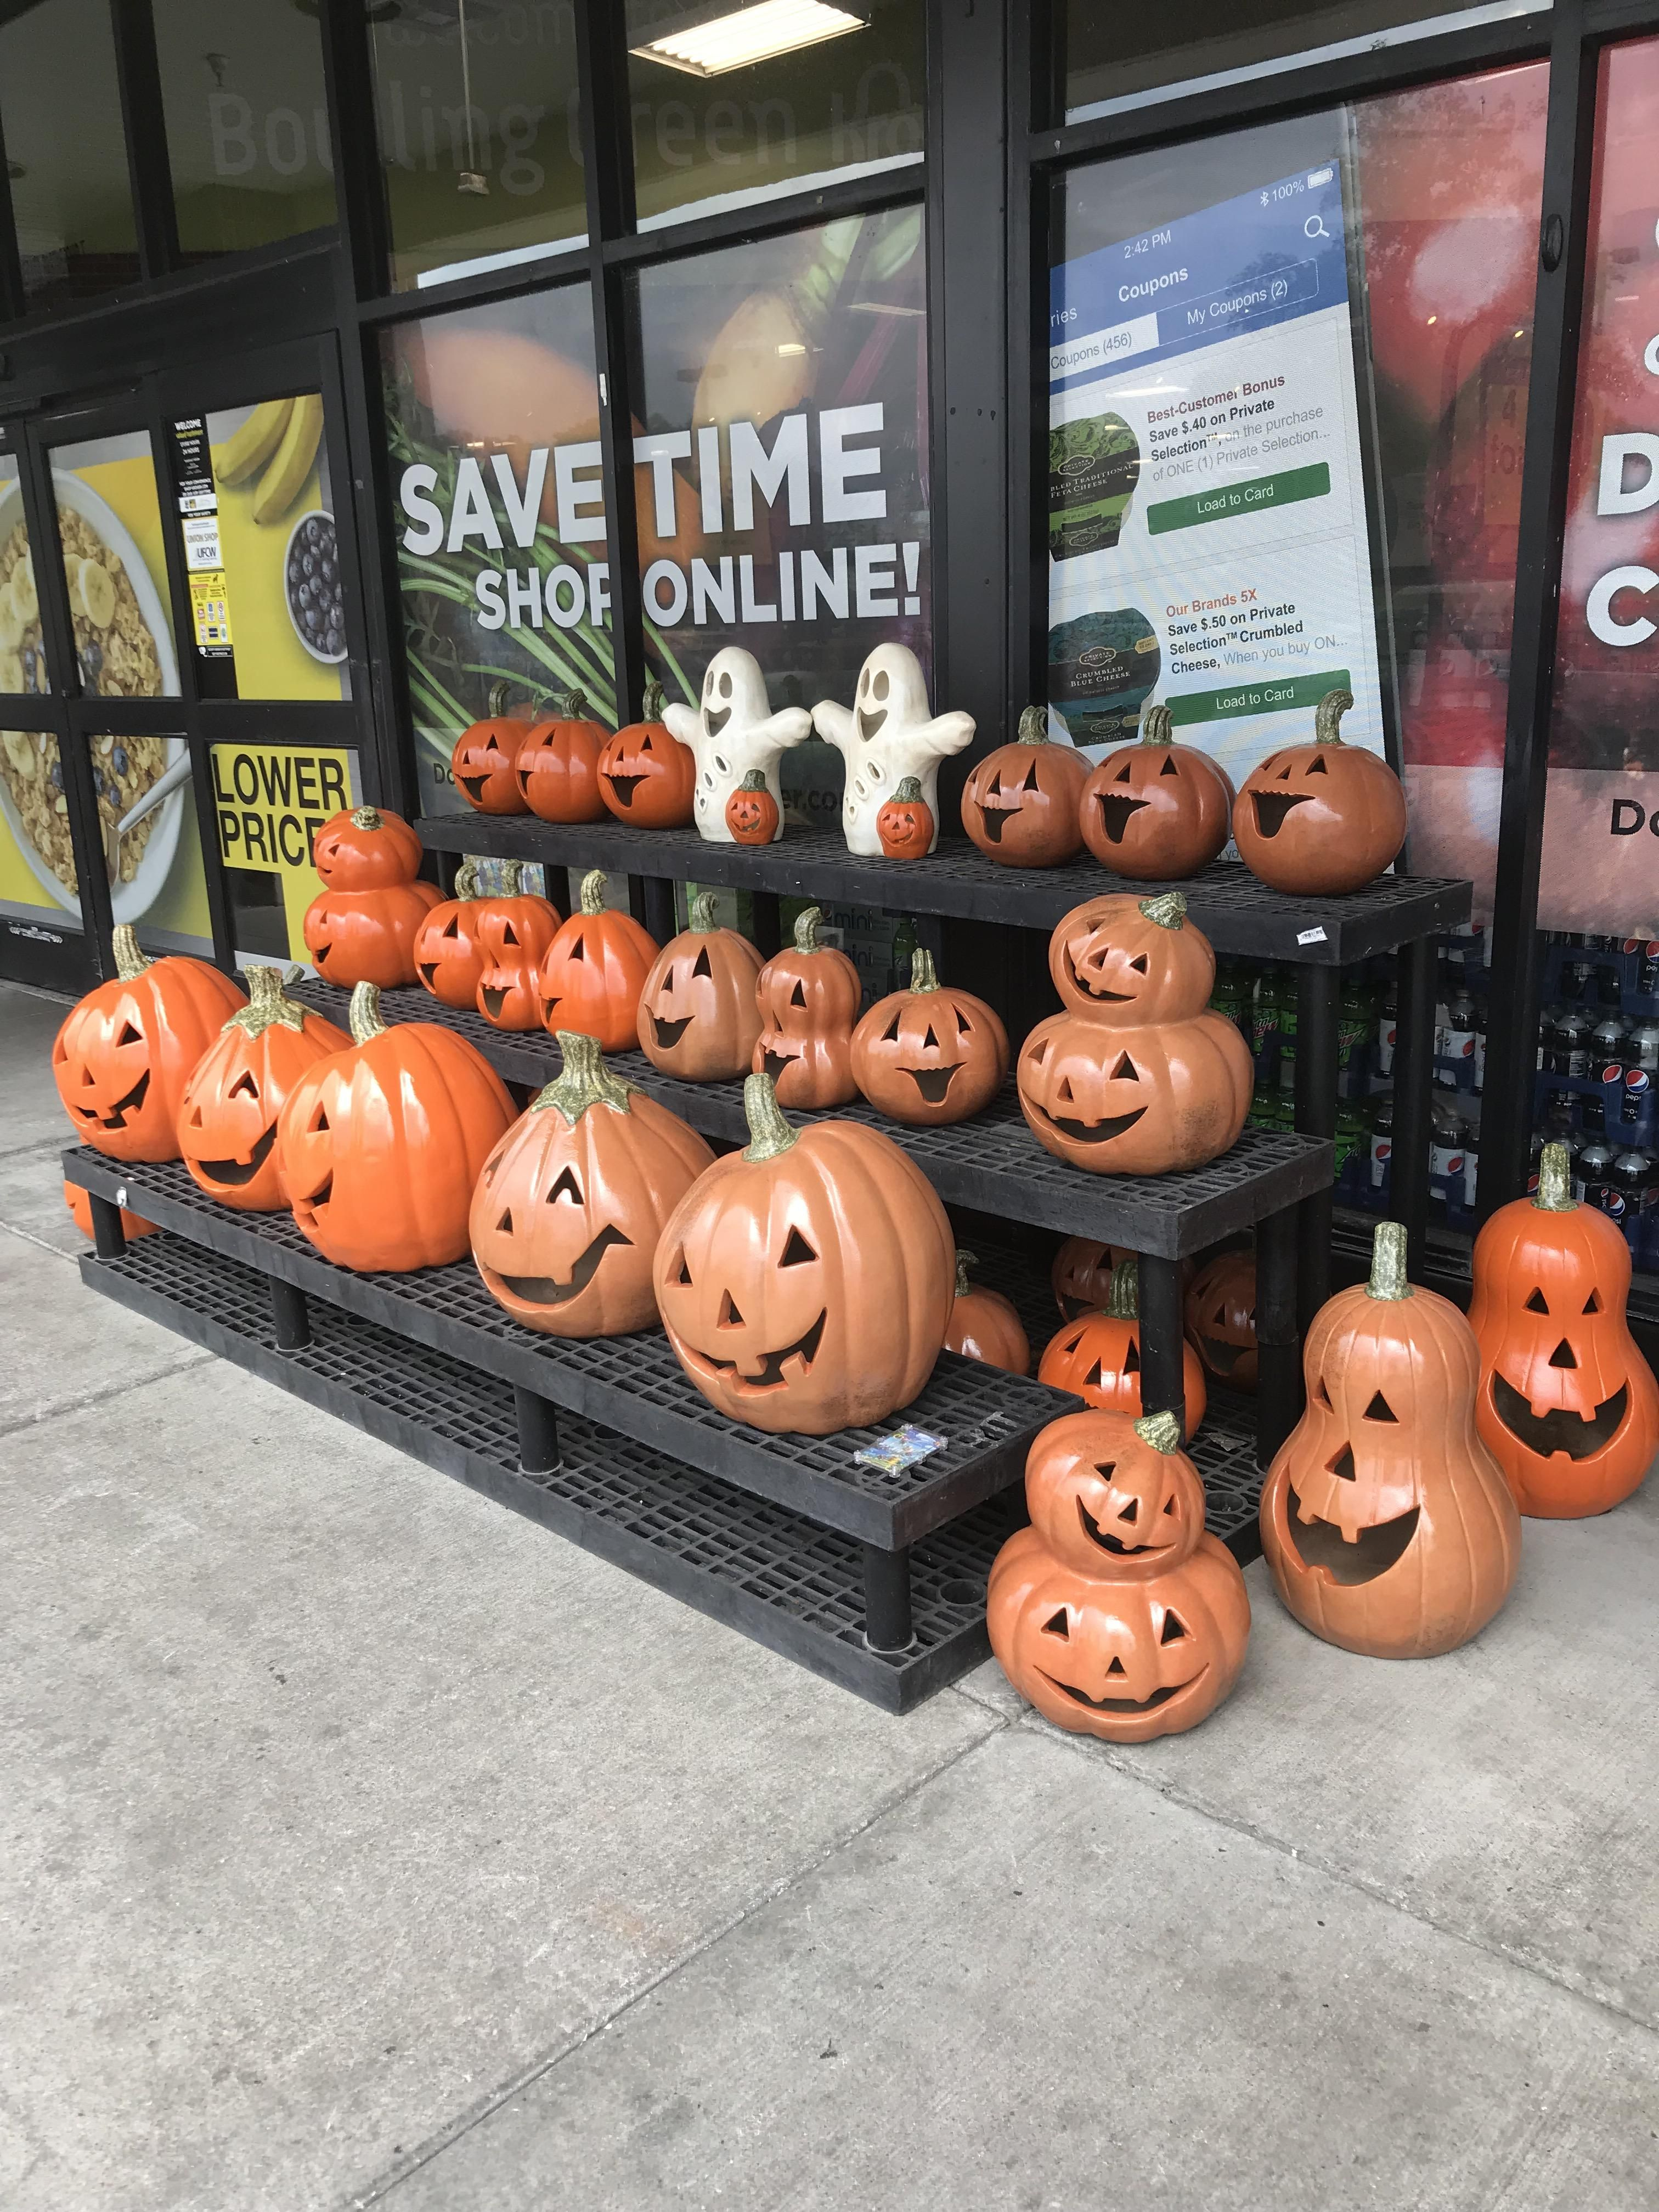 Pin By Mitchel Coombs On Fall In 2020 Halloween Outdoor Decorations Halloween Decorations Happy Halloween